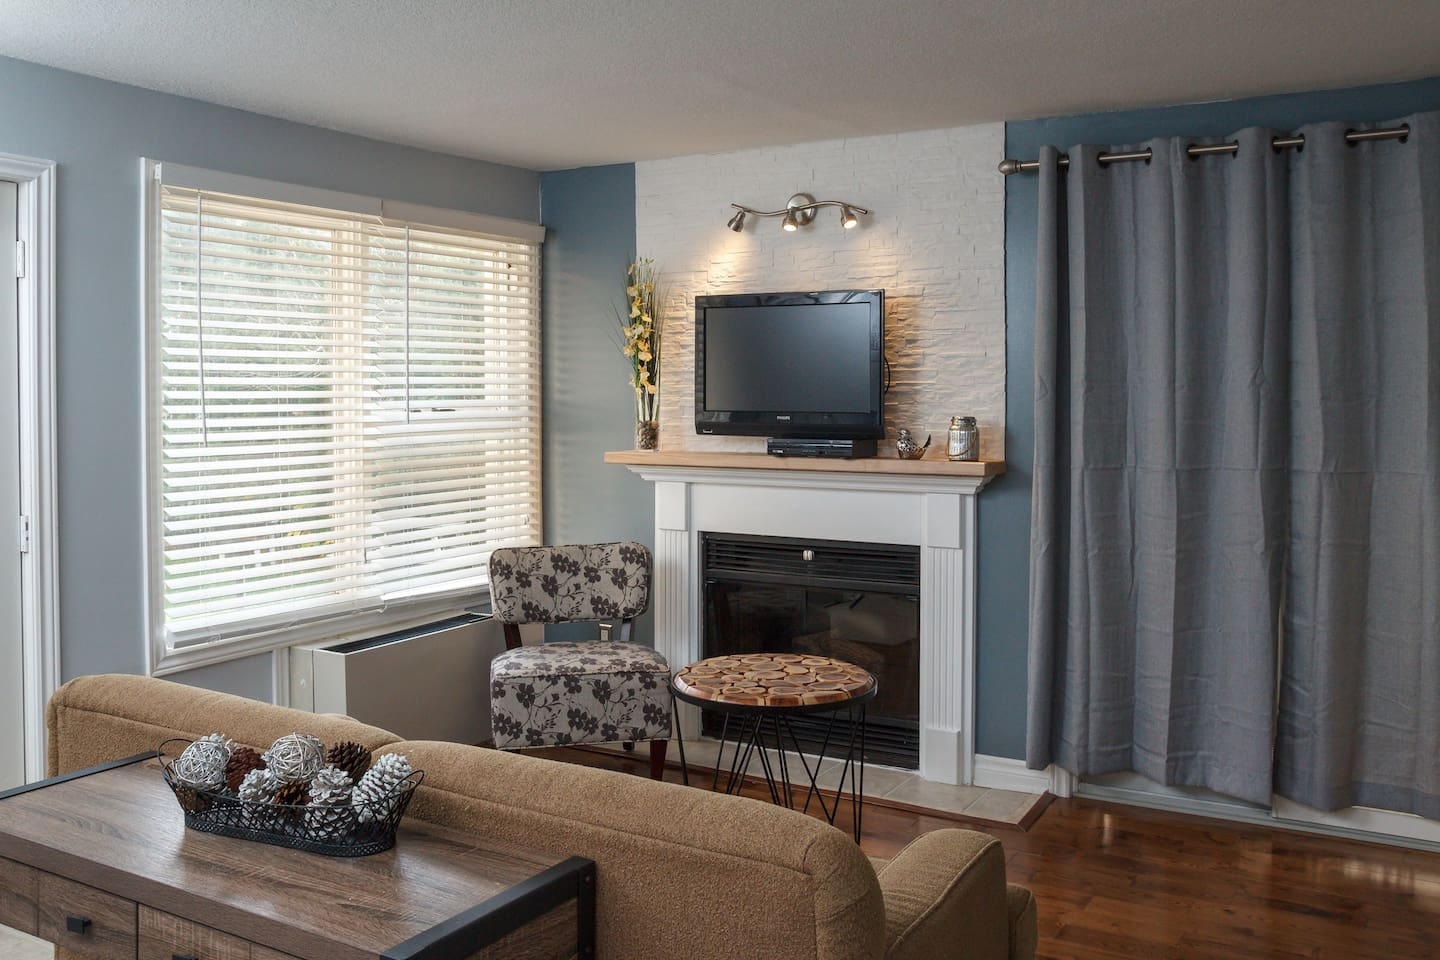 Electric Fireplace, Digital TV, allows for a perfect spot to relax after a long day in the outdoors.  Perfect spot for family time.